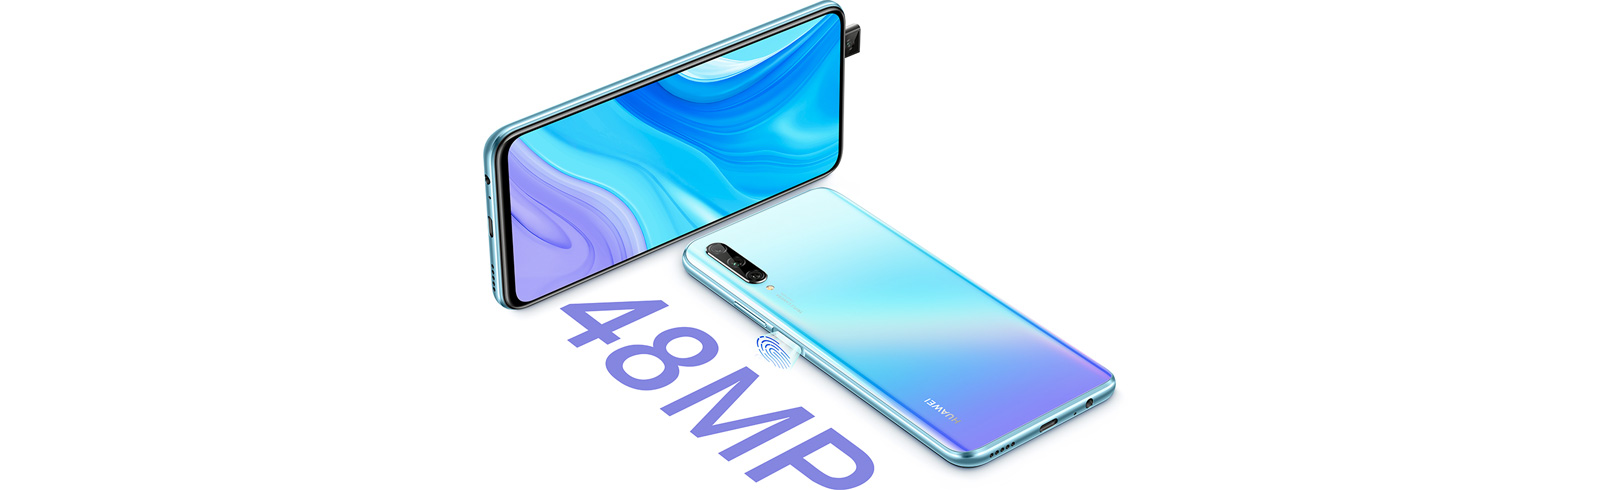 The Honor 9X Pro with a Kirin 710F chipset launched as a Huawei Y9s in some local markets